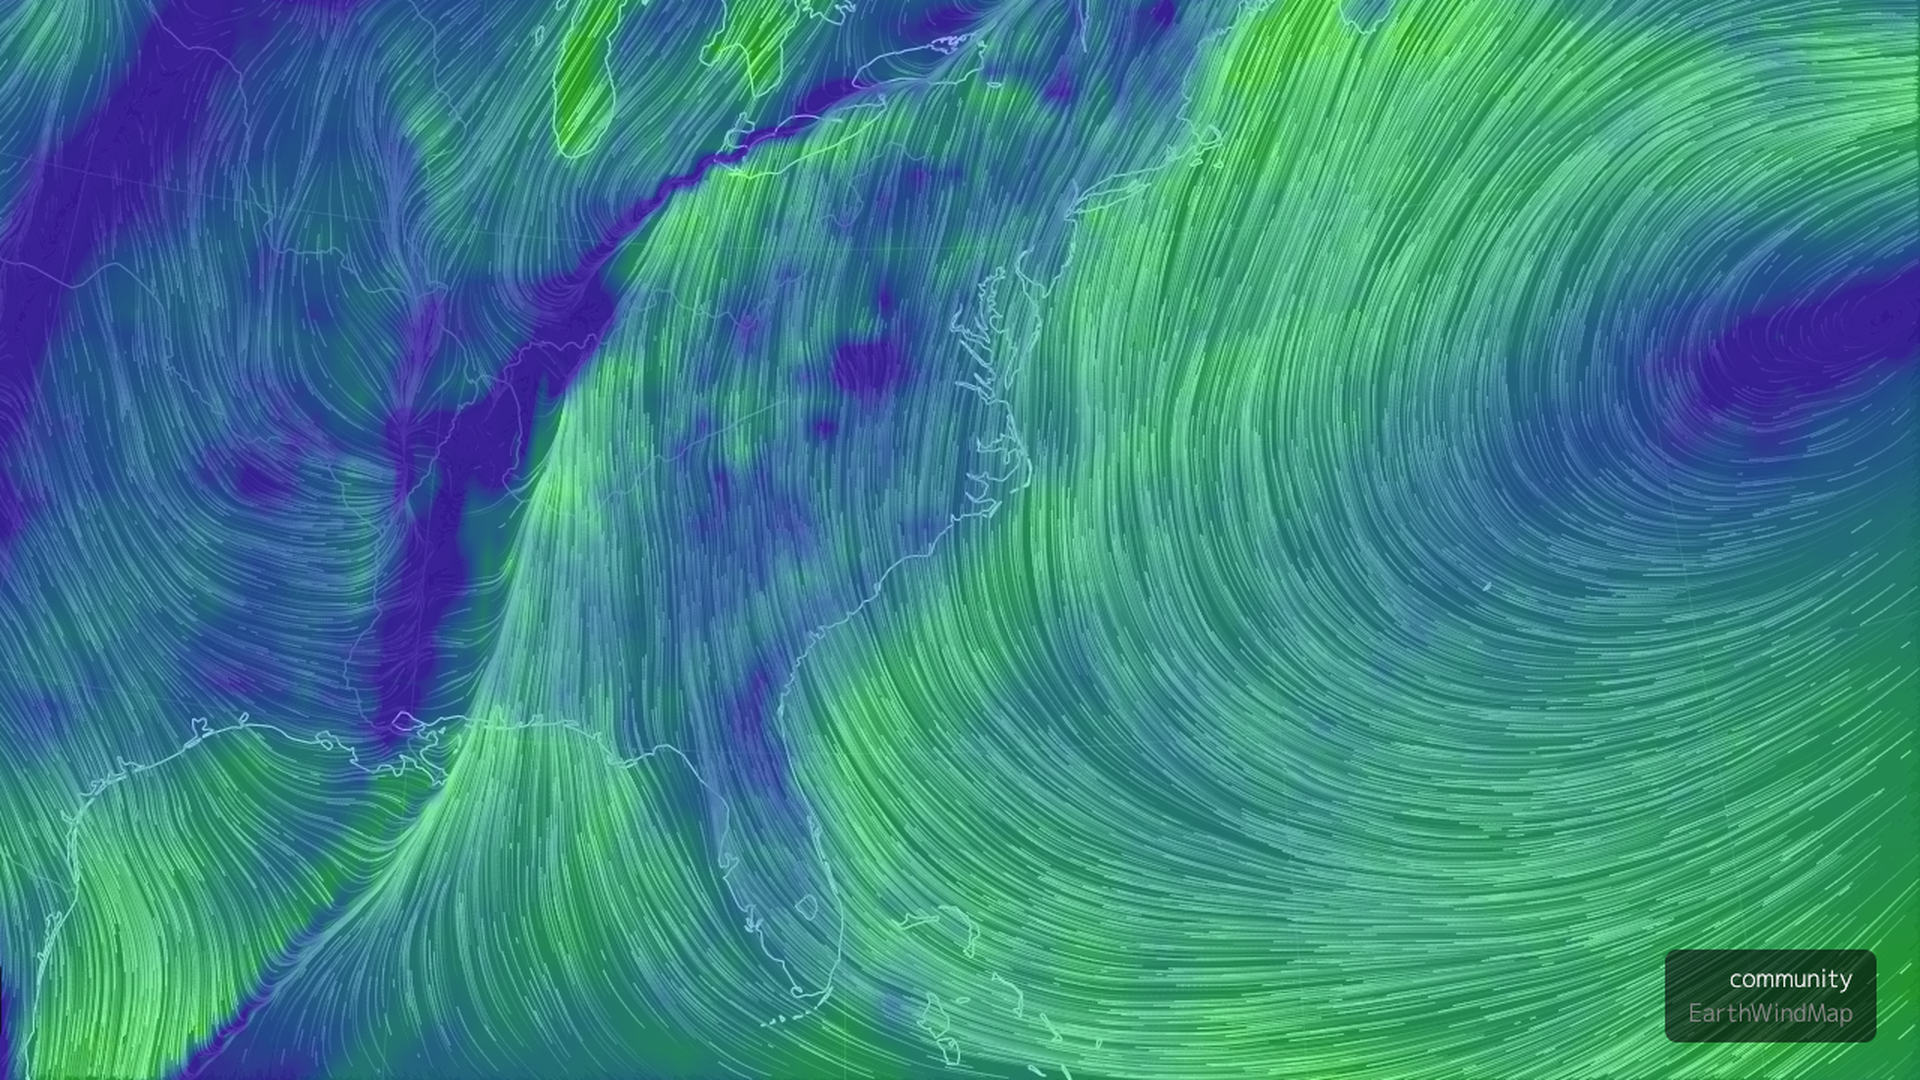 This image is a live weather illustration of the Southeast